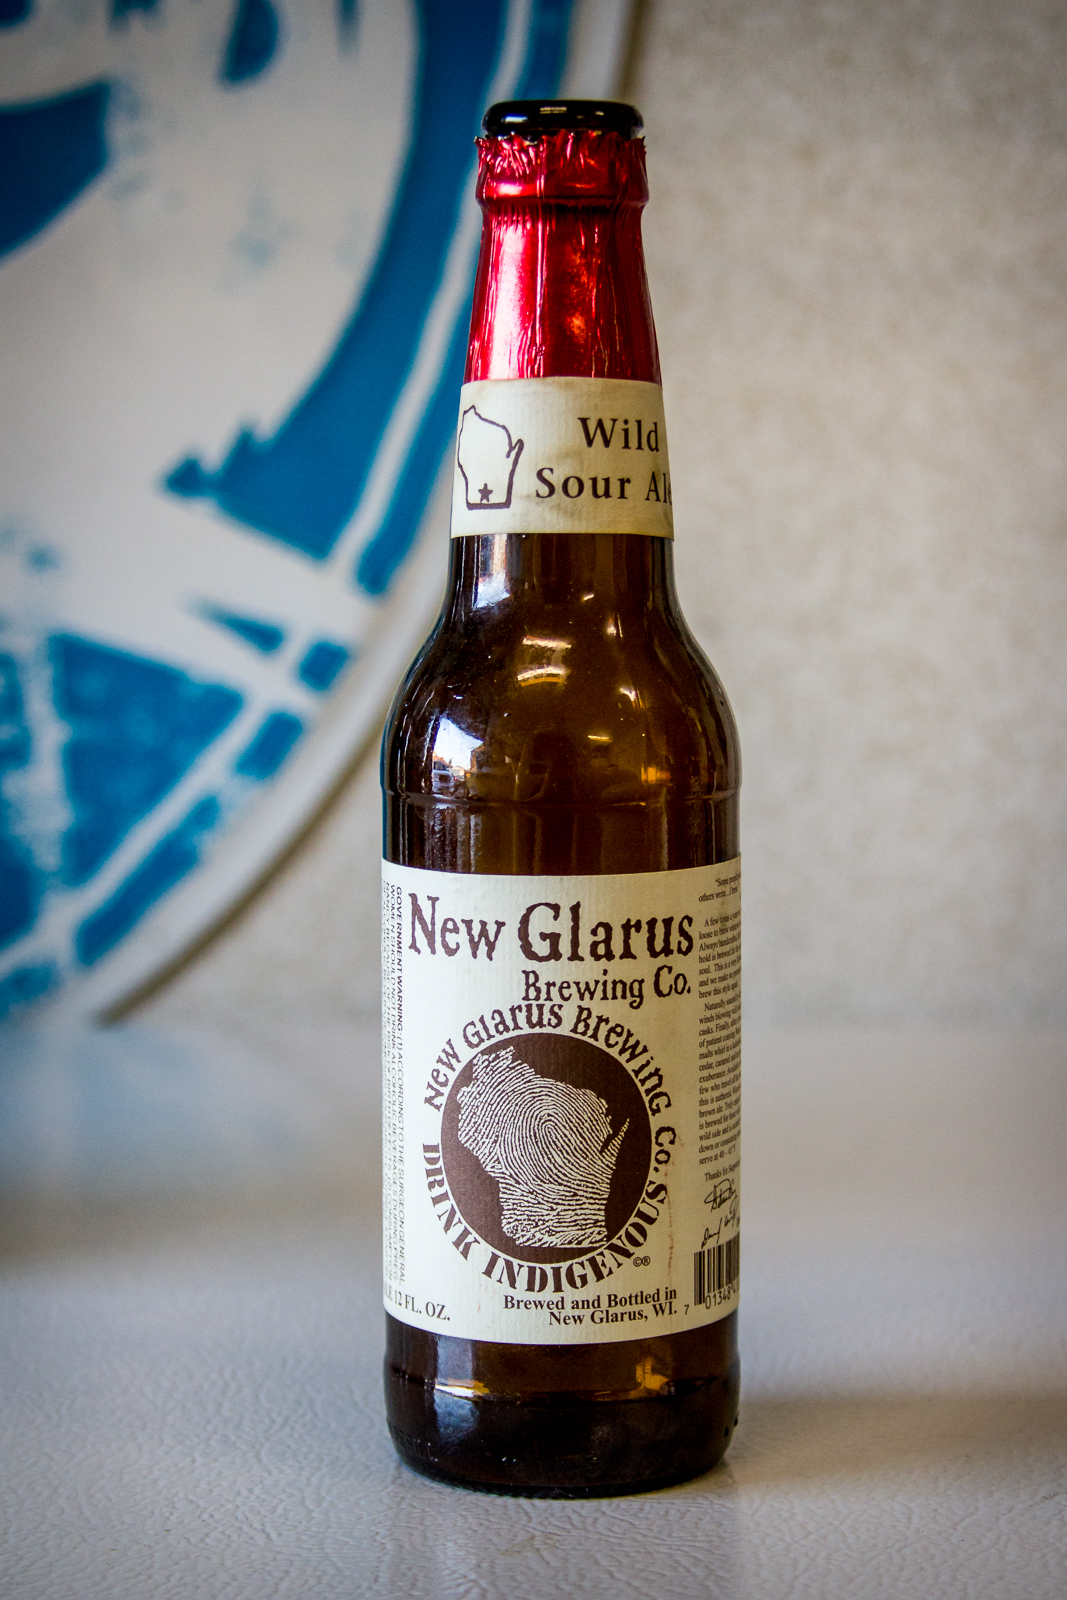 New Glarus Brewing Co. - Wild Sour Ale